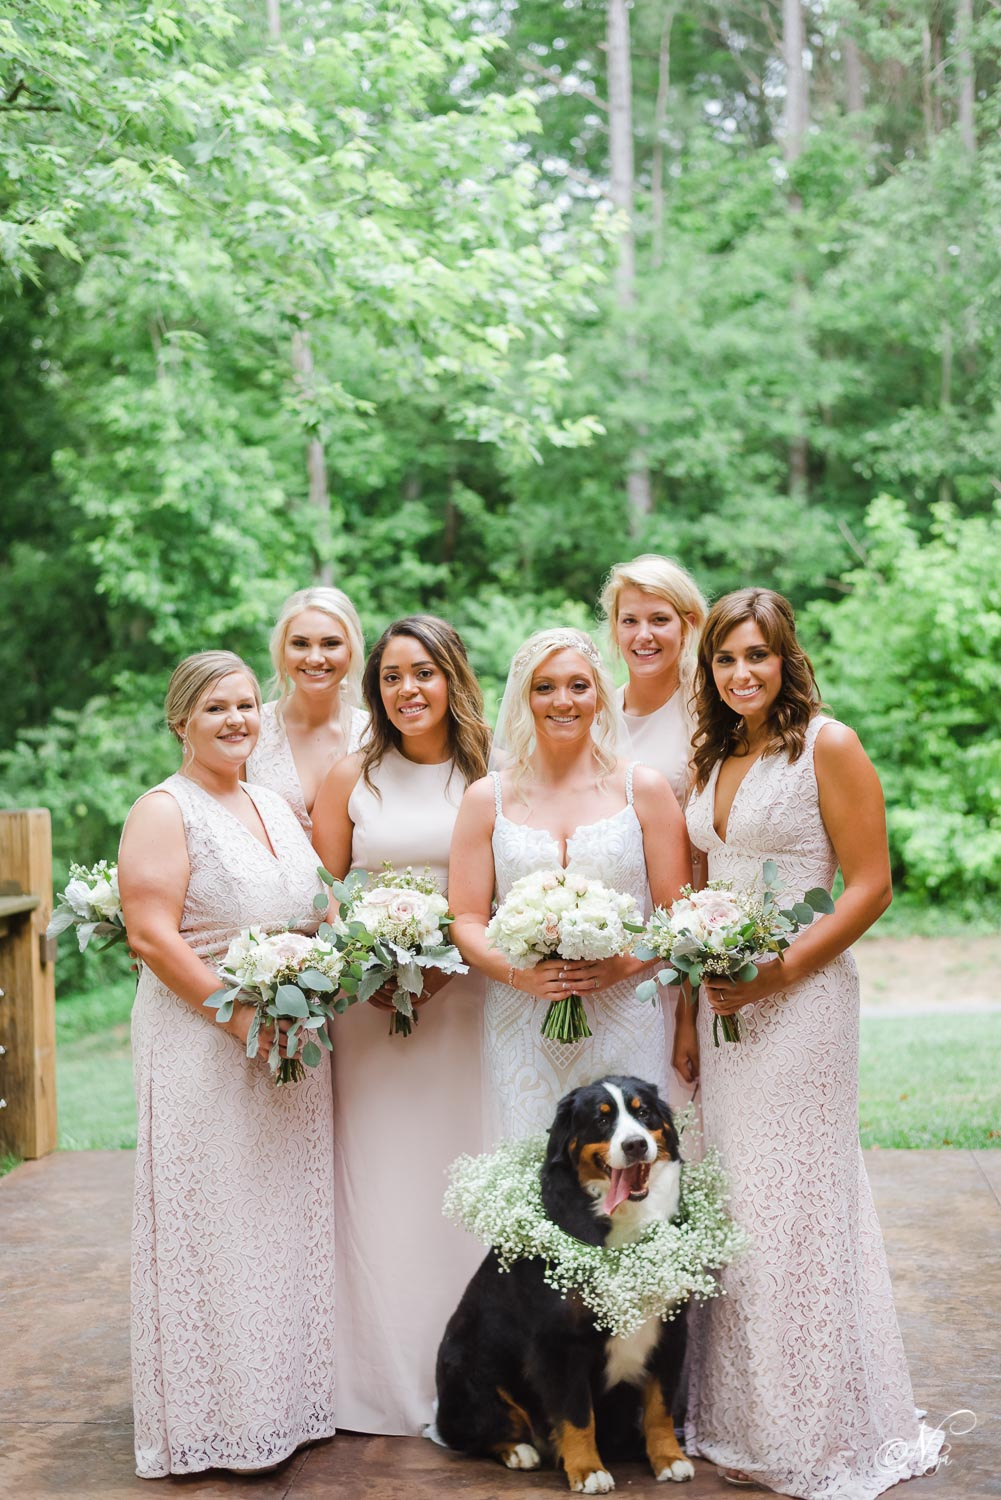 bridesmaids holding white flowers and Bernese mountain dog with baby's breath wreath around her neck at wedding venue near Cleveland TN